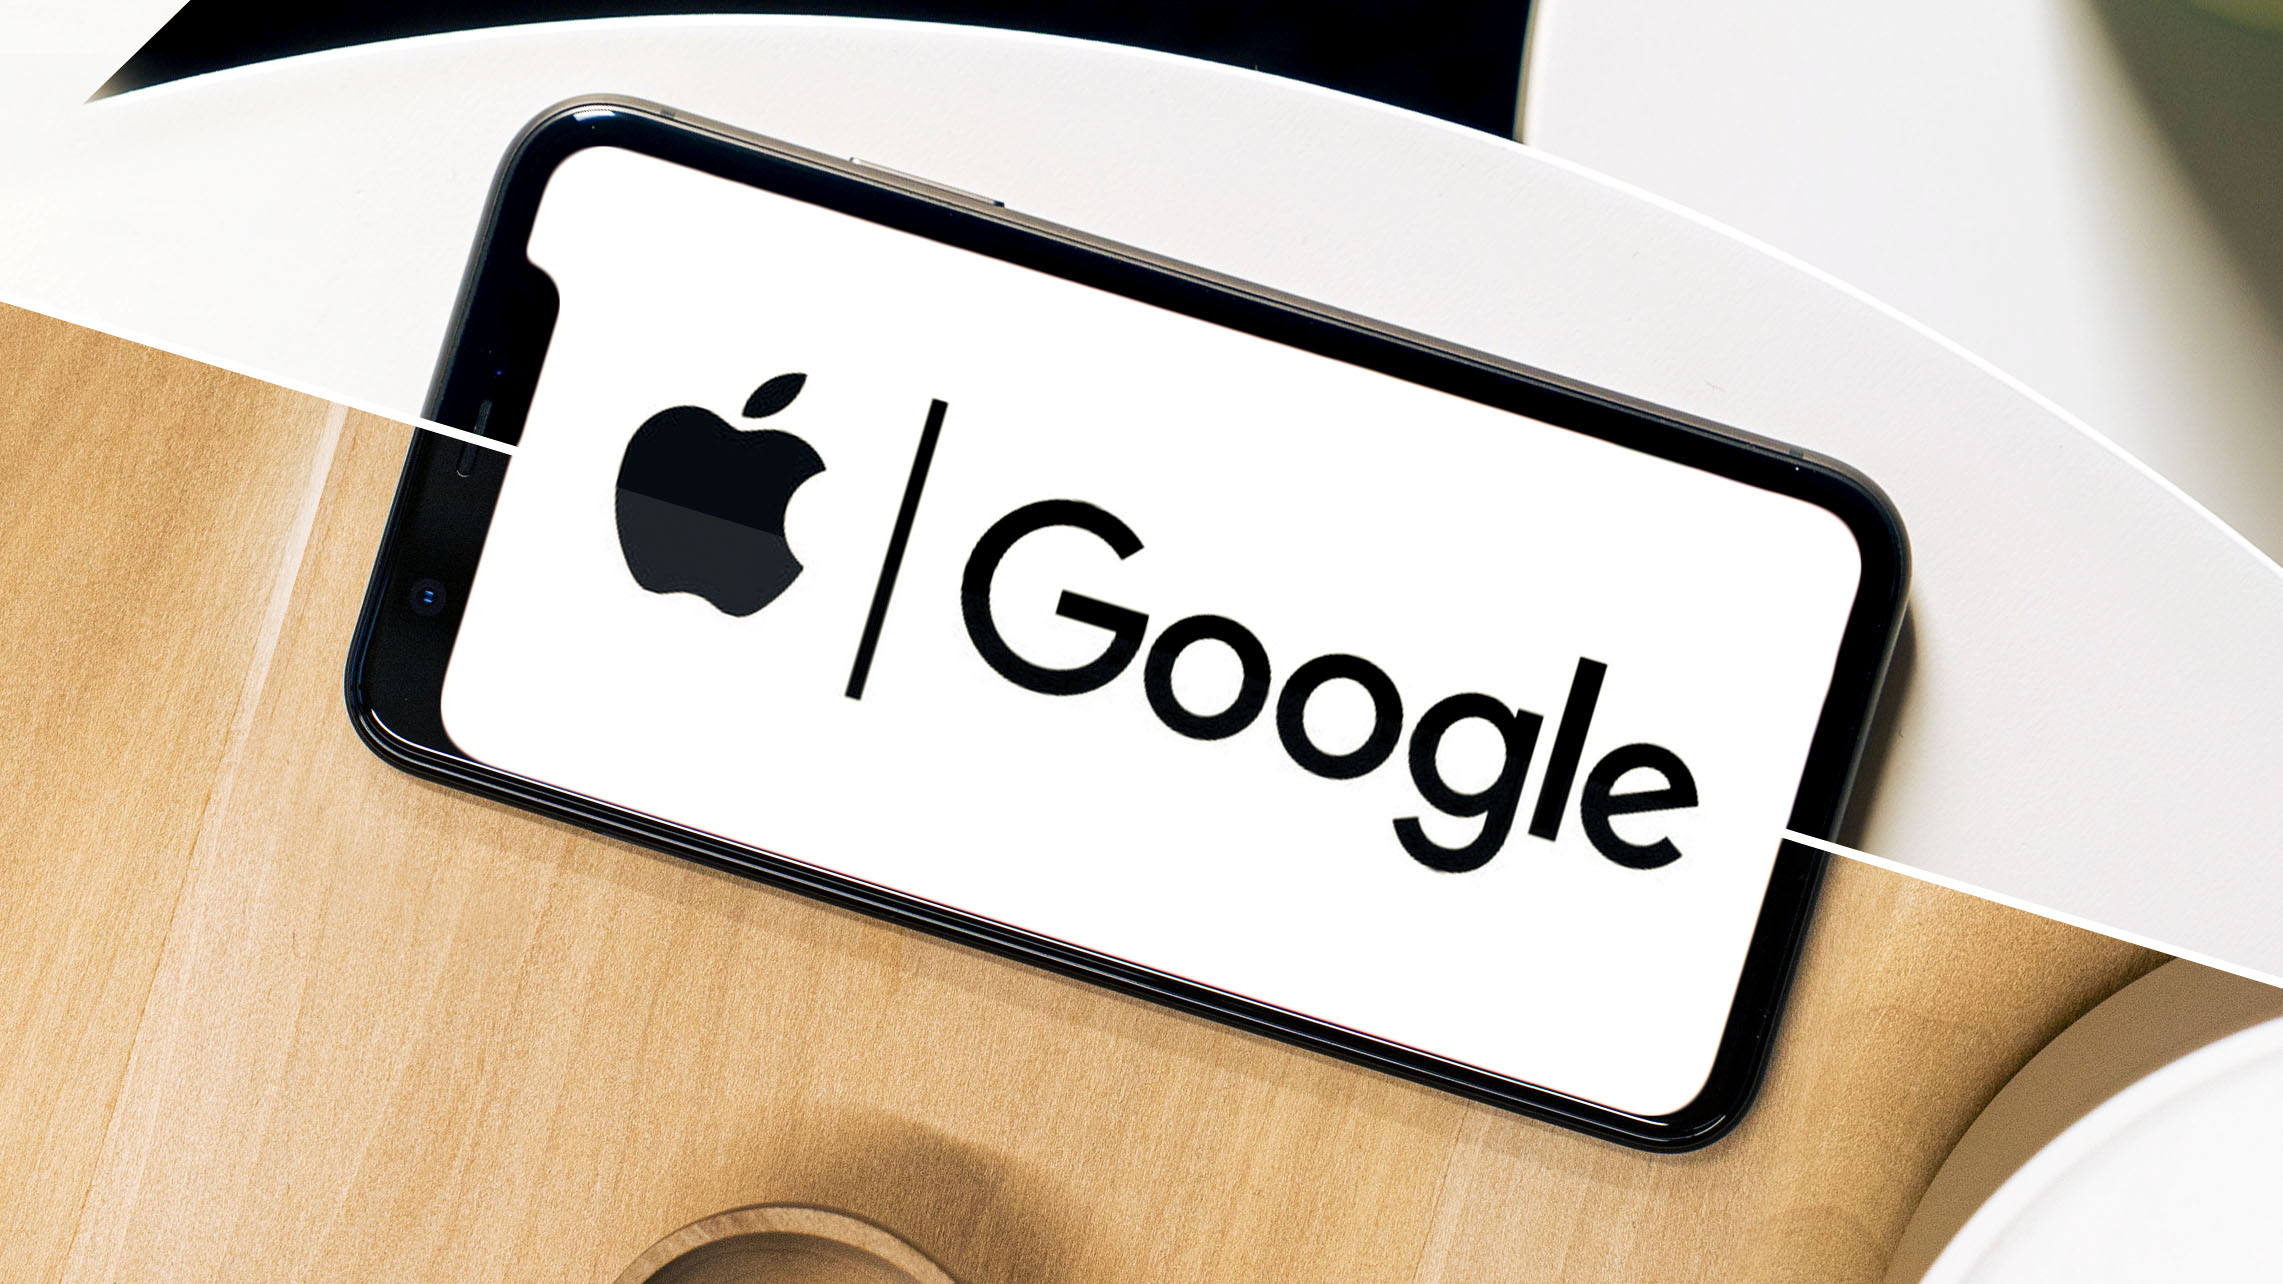 Following Apple's path, Google working on tracking protection for Android